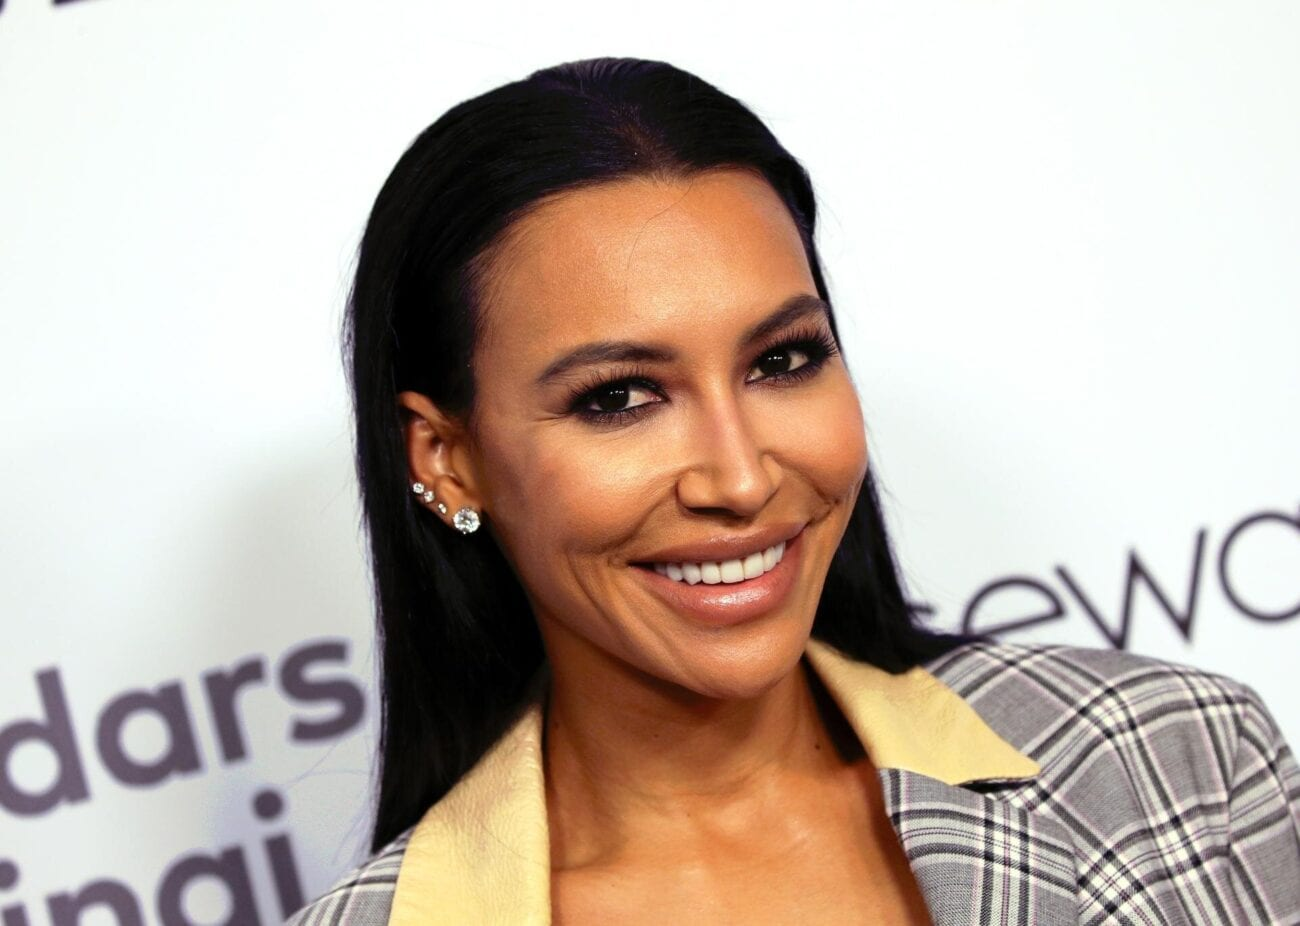 In remembering Naya Rivera's legacy, here are five of her jaw-droppingly gorgeous covers that she did as Santana on 'Glee'.